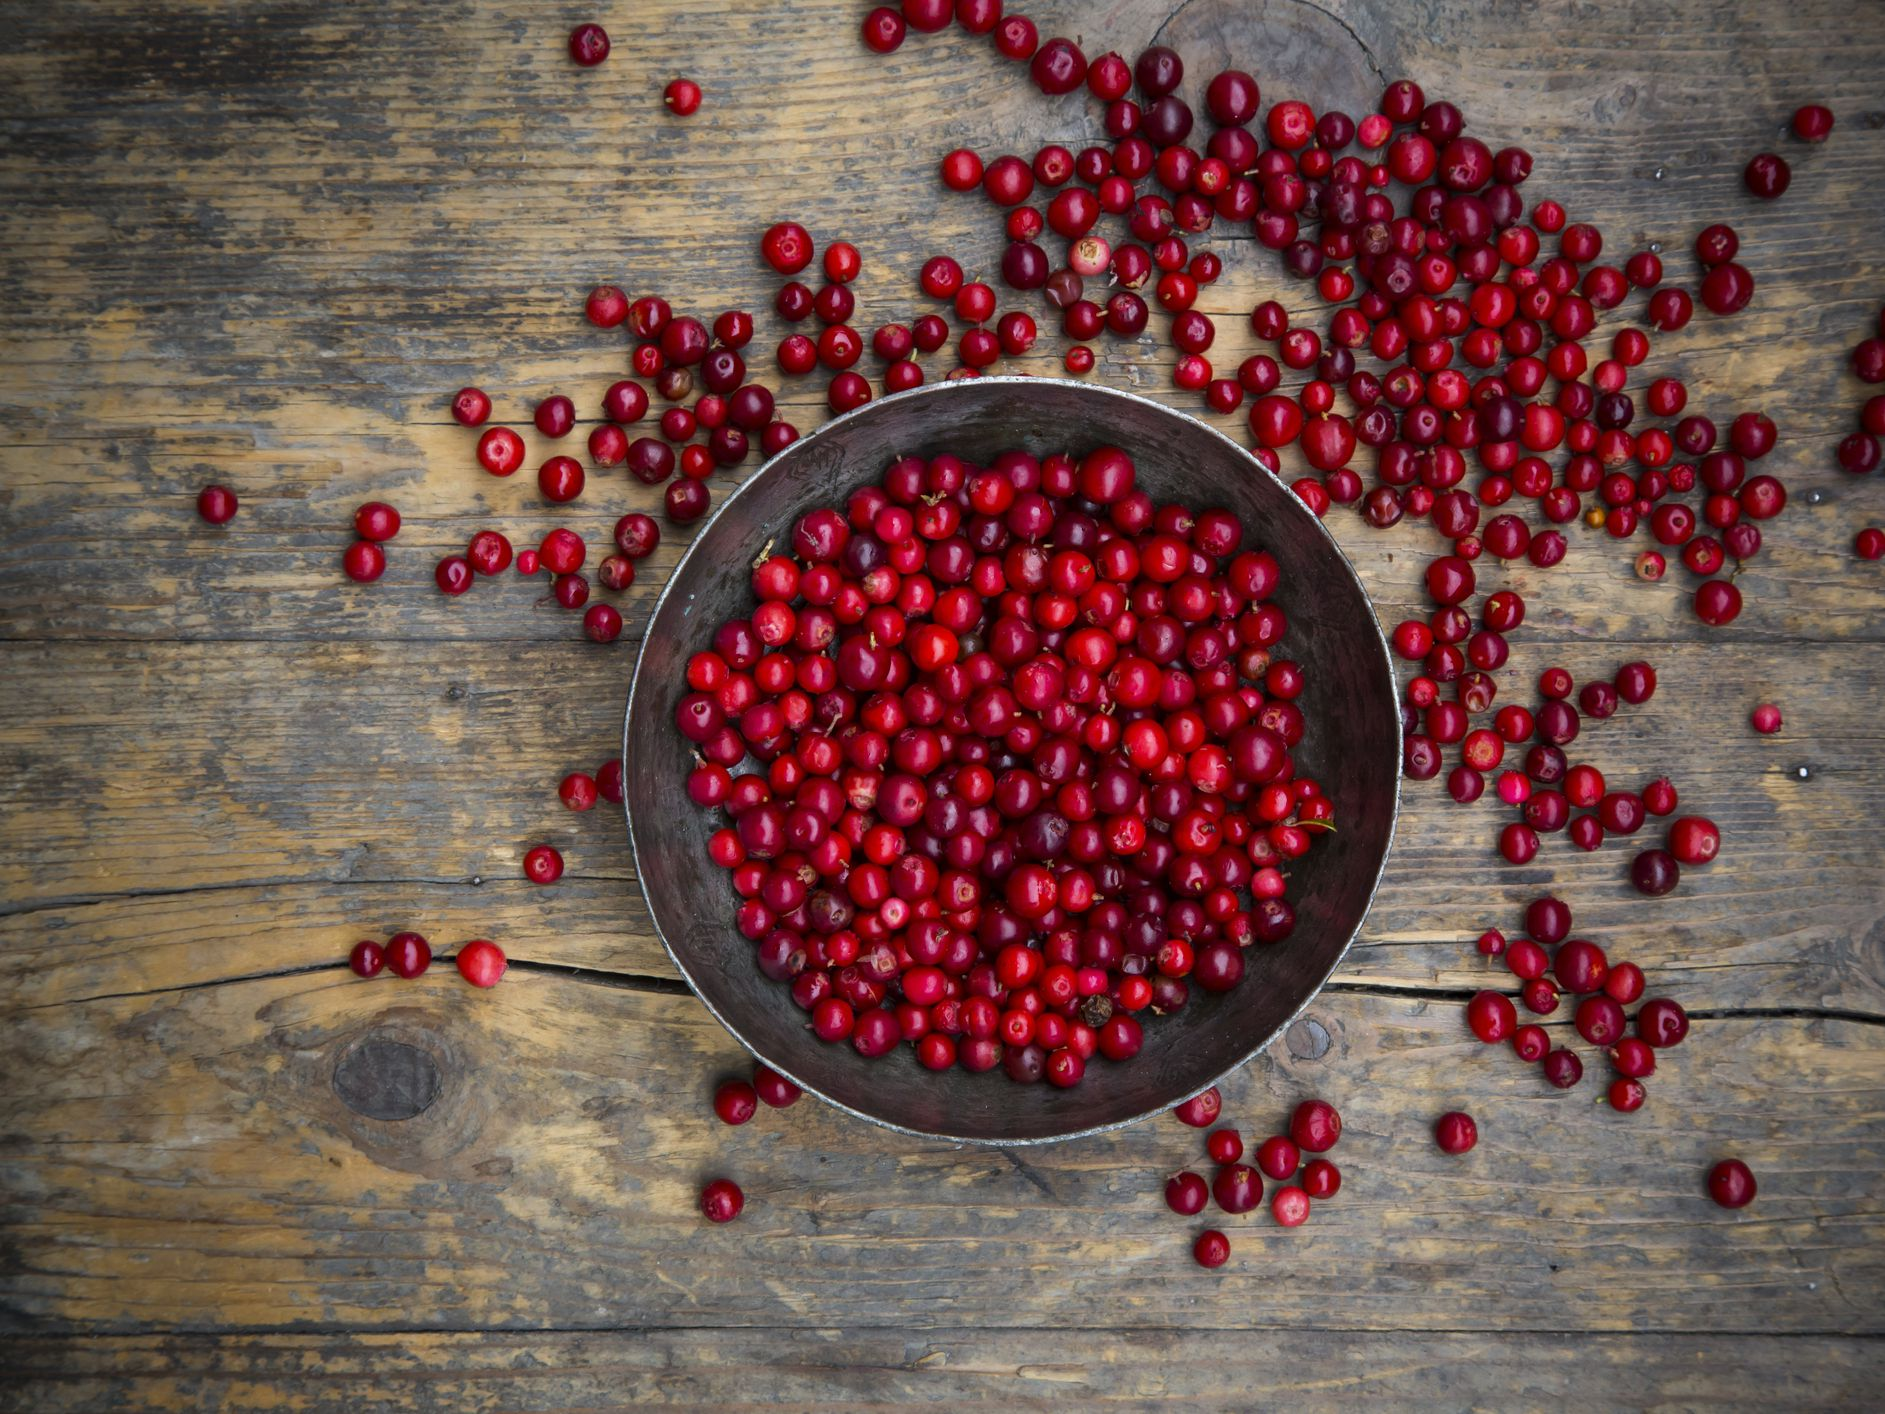 What Are Lingonberries And How Are They Used